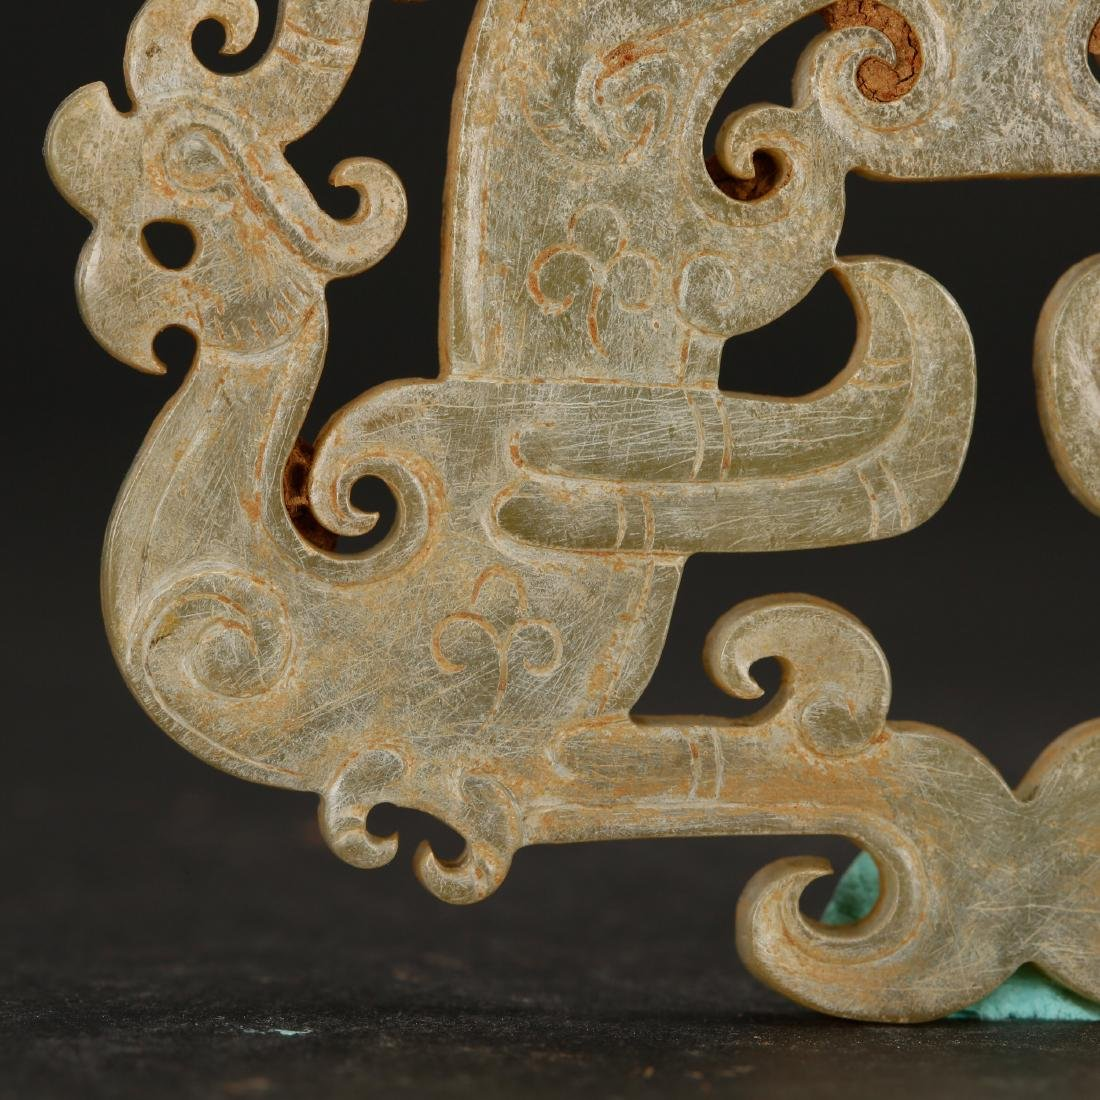 CHINESE ARCHAIC STYLE JADE PENDANT - 3